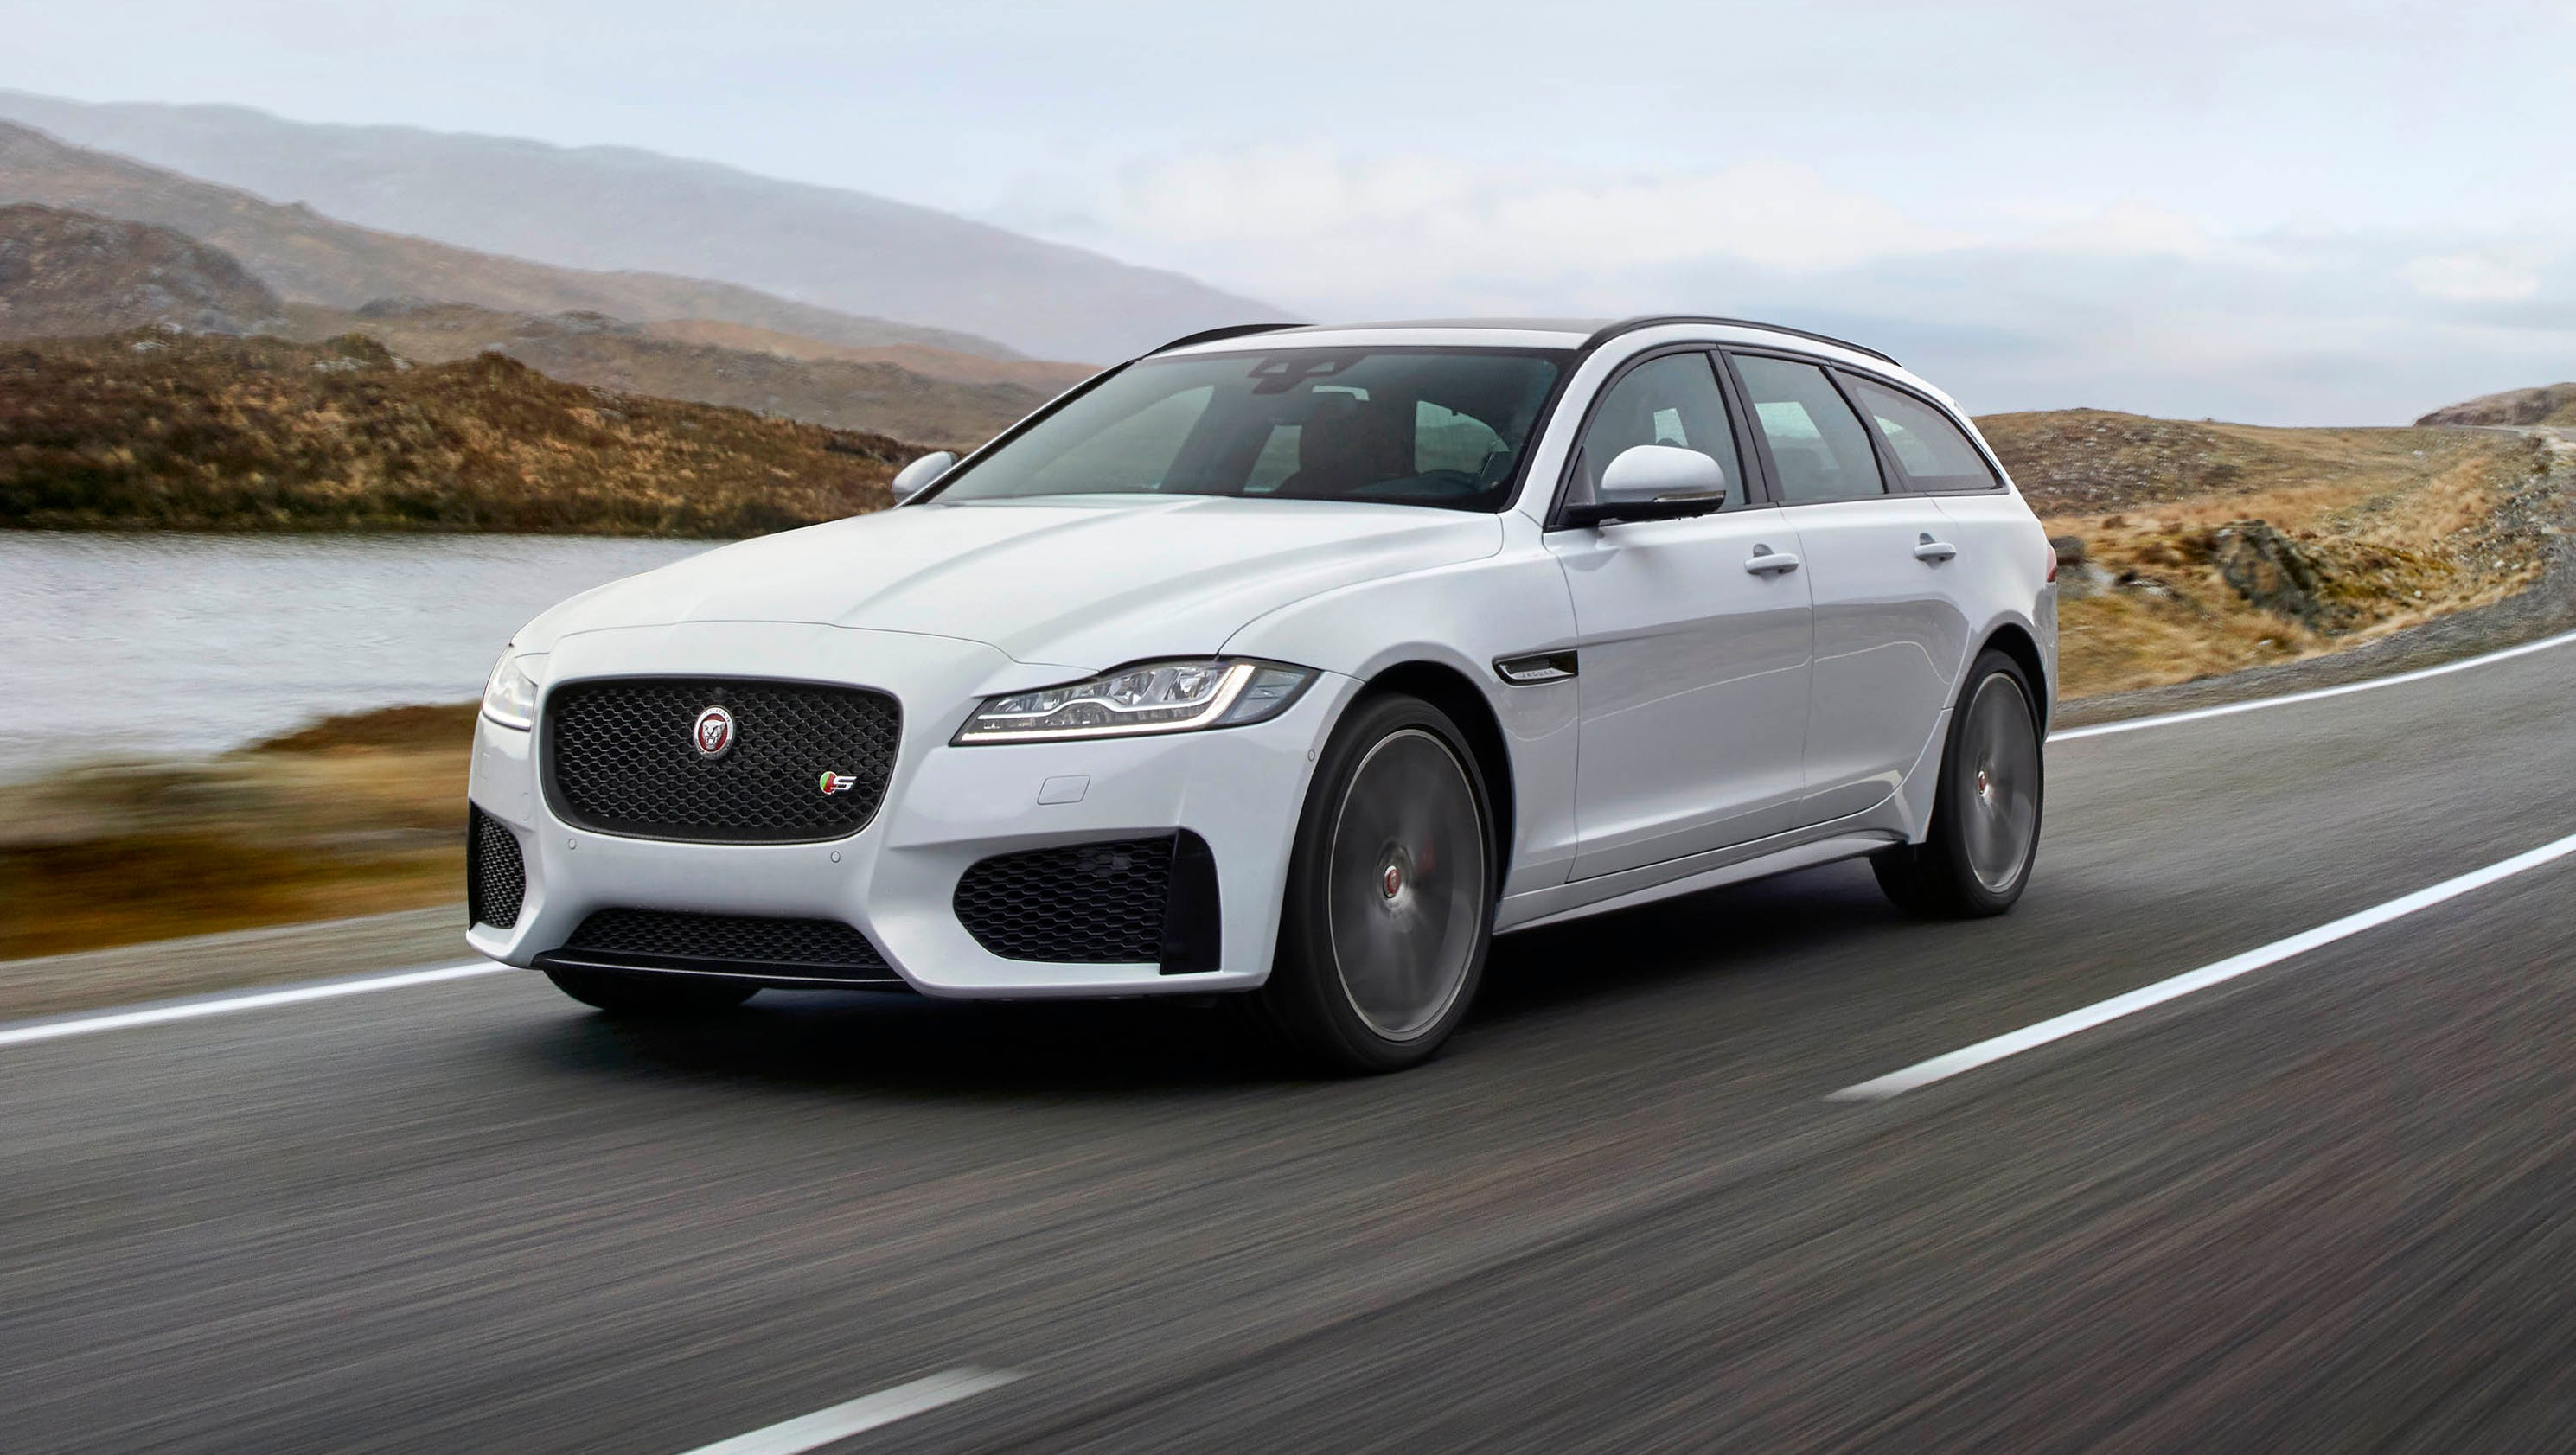 supercharged xf trade used sale forum buy for edition jaguar fs private premium northeast img luxury classifieds